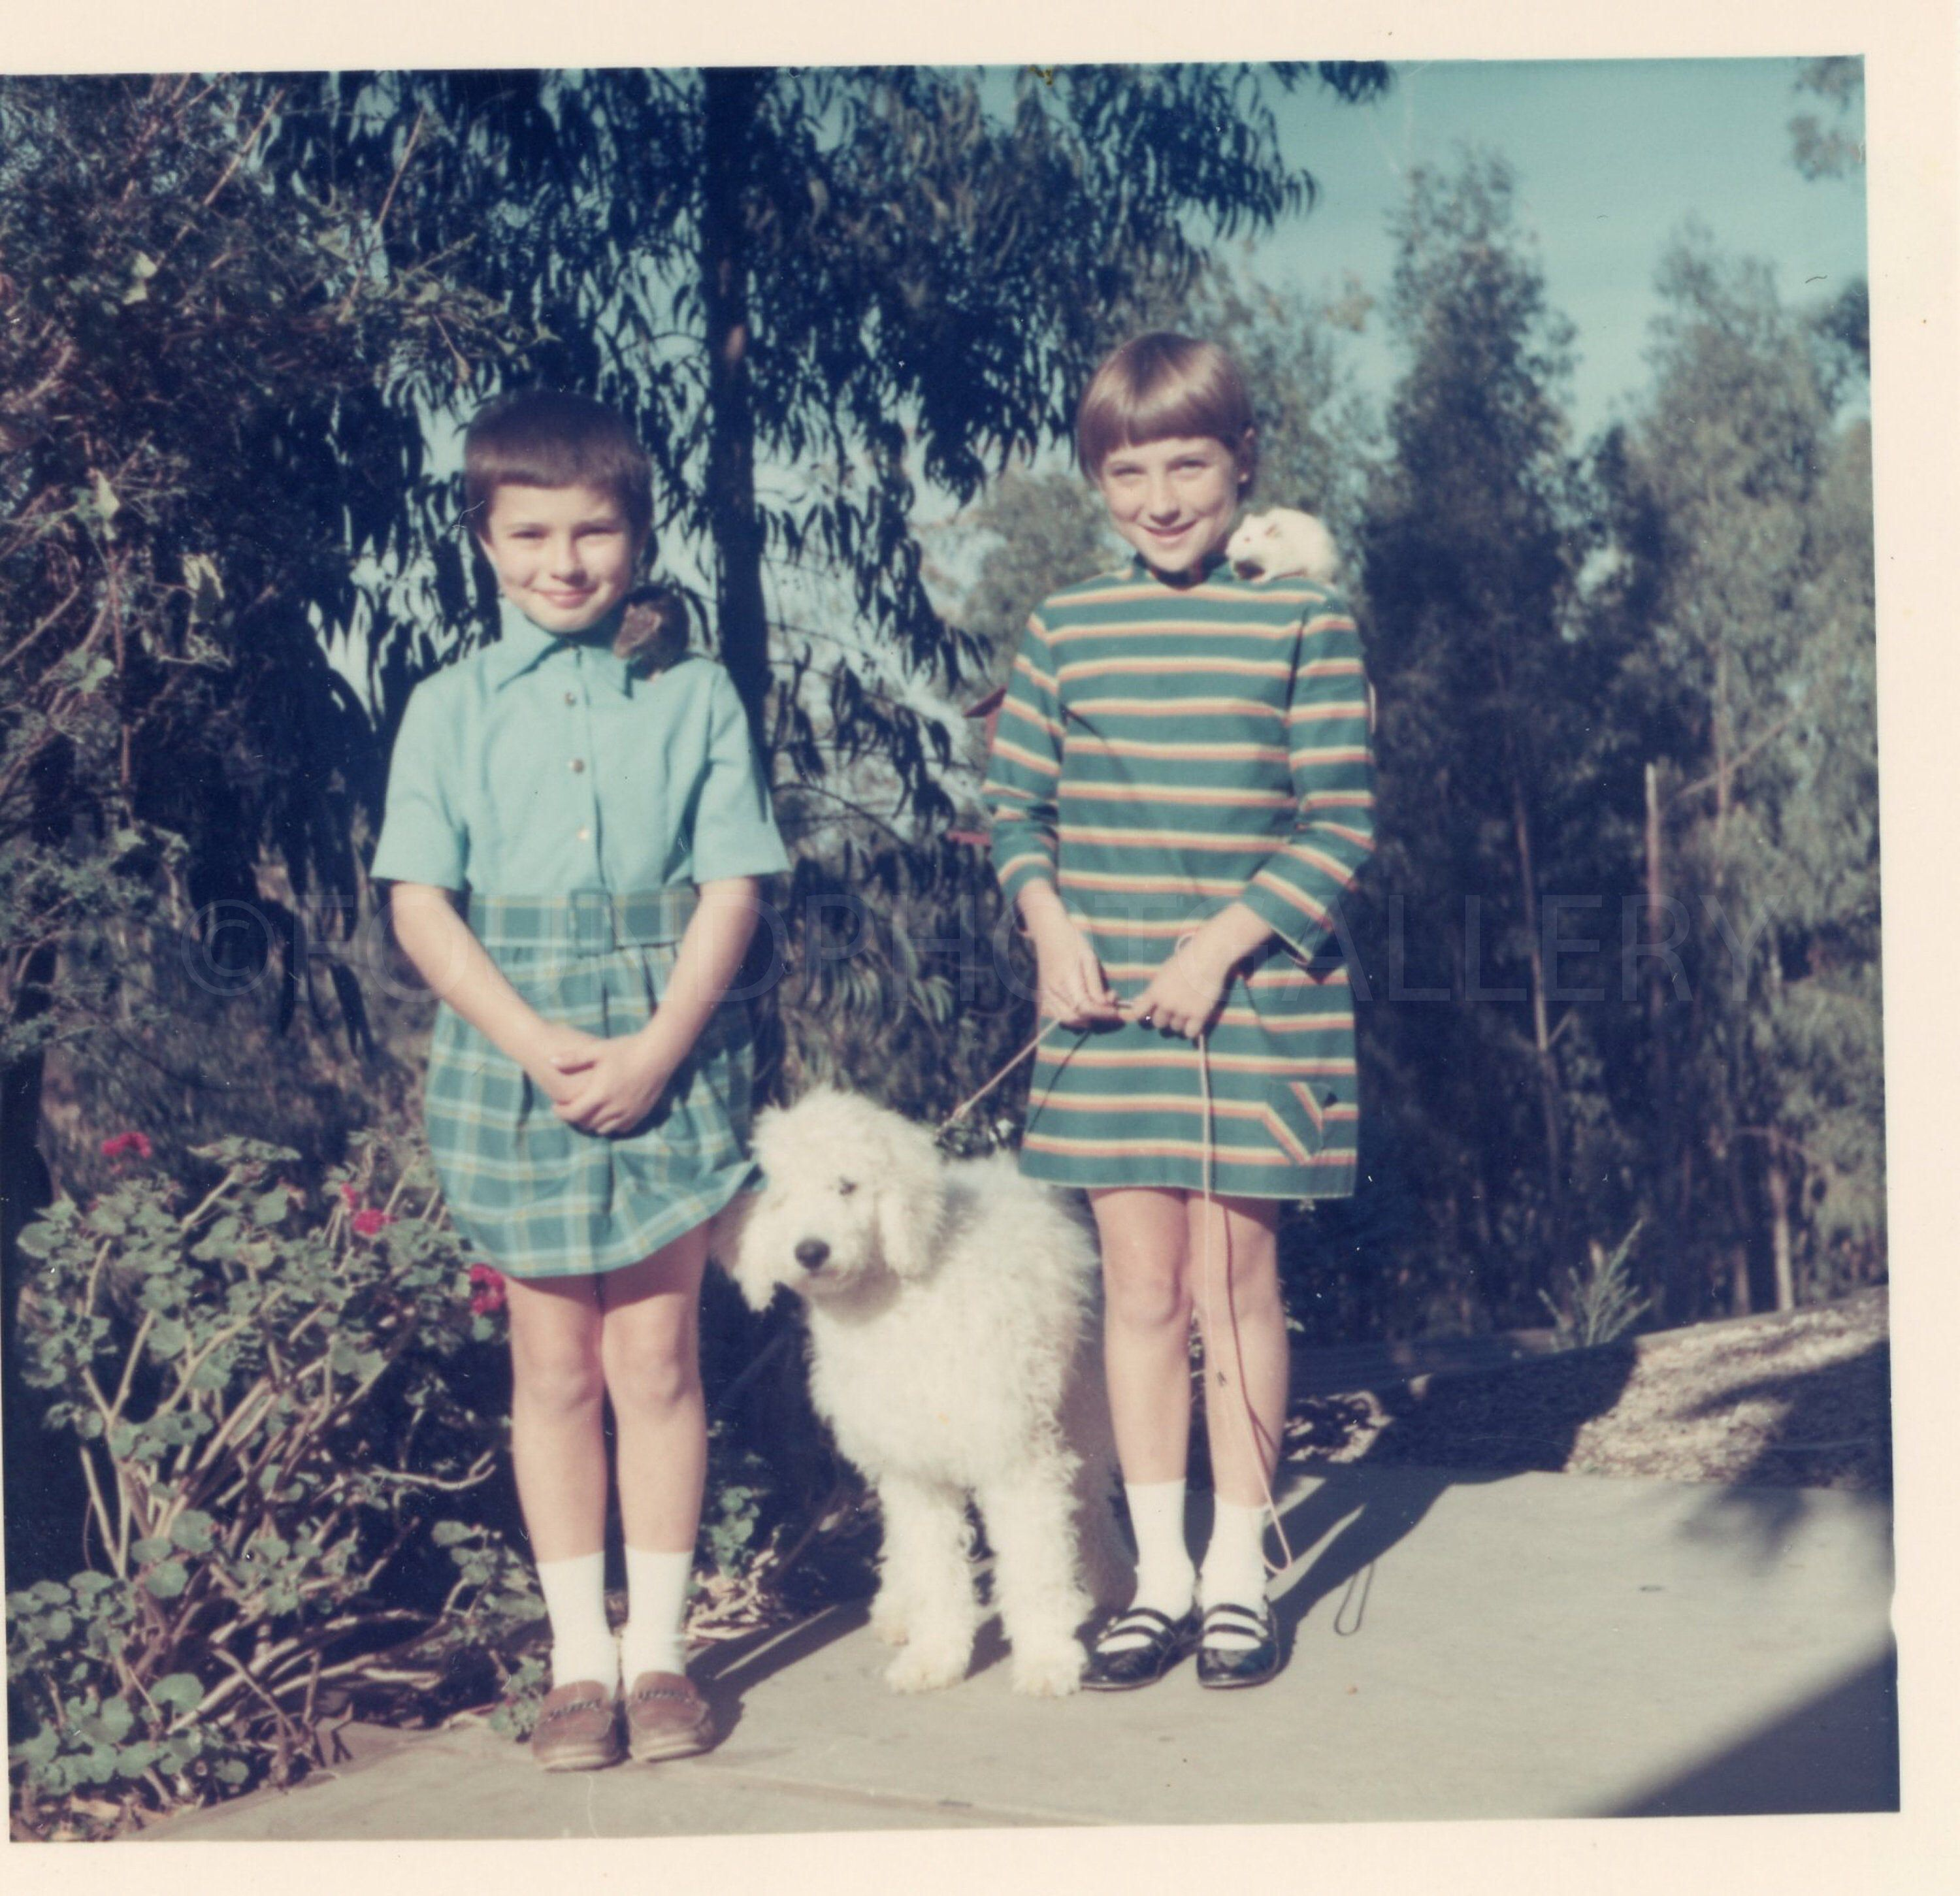 Excited to share this item from my #etsy shop: Fashion Forward Sisters With Pet Rats on Shoulders Holding Big Fluffy White Dog, Vintage Photo, Color Snapshot, Vernacular, Found Photo #art #photography #blue #green #midcentury #animal